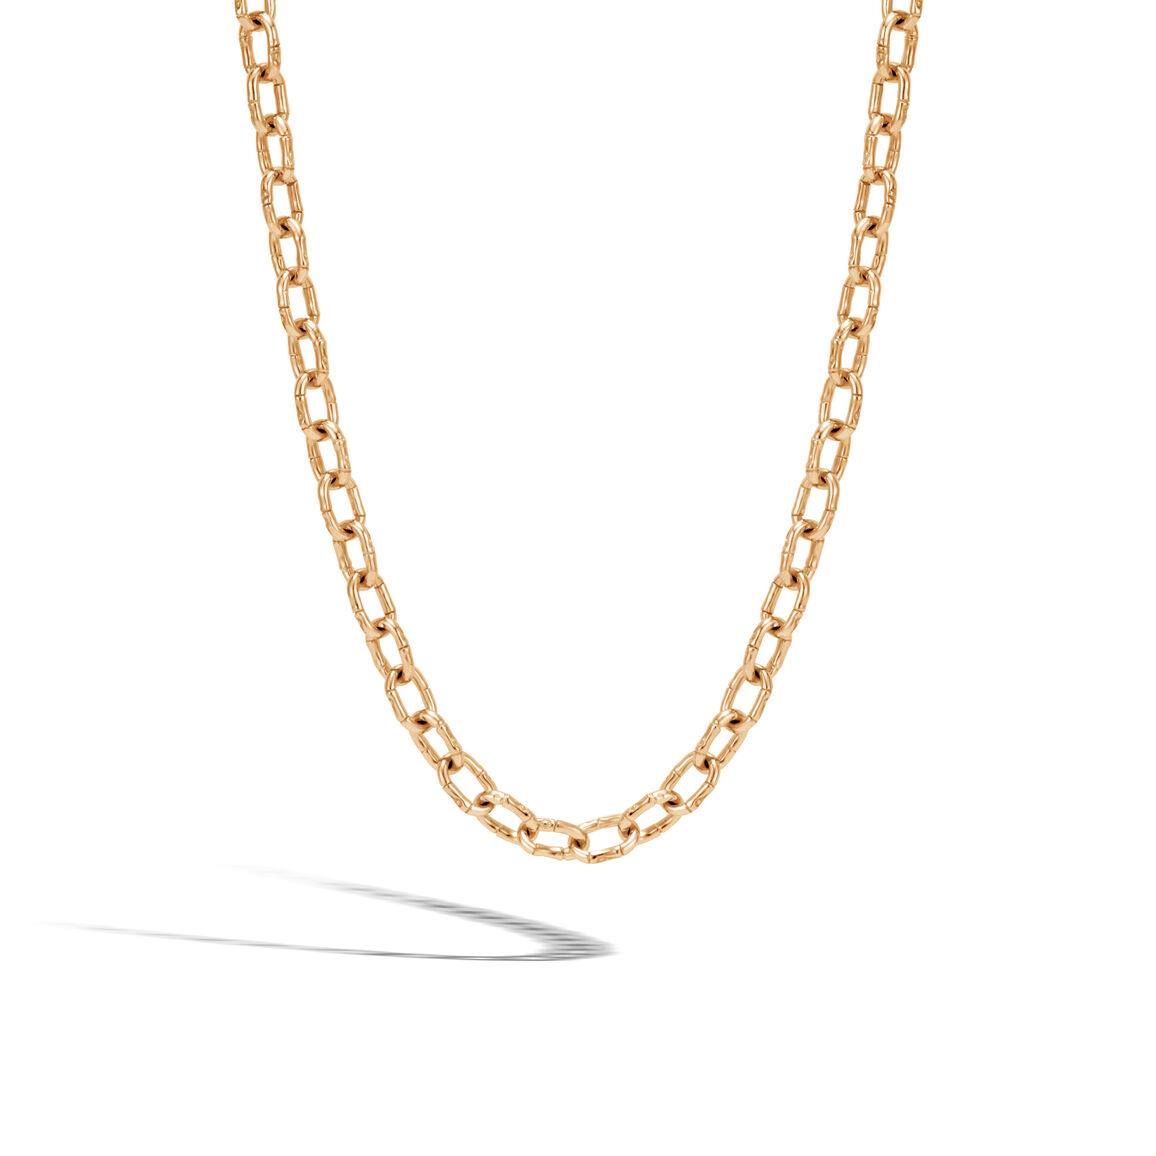 Bamboo 6MM Link Necklace in 18K Gold